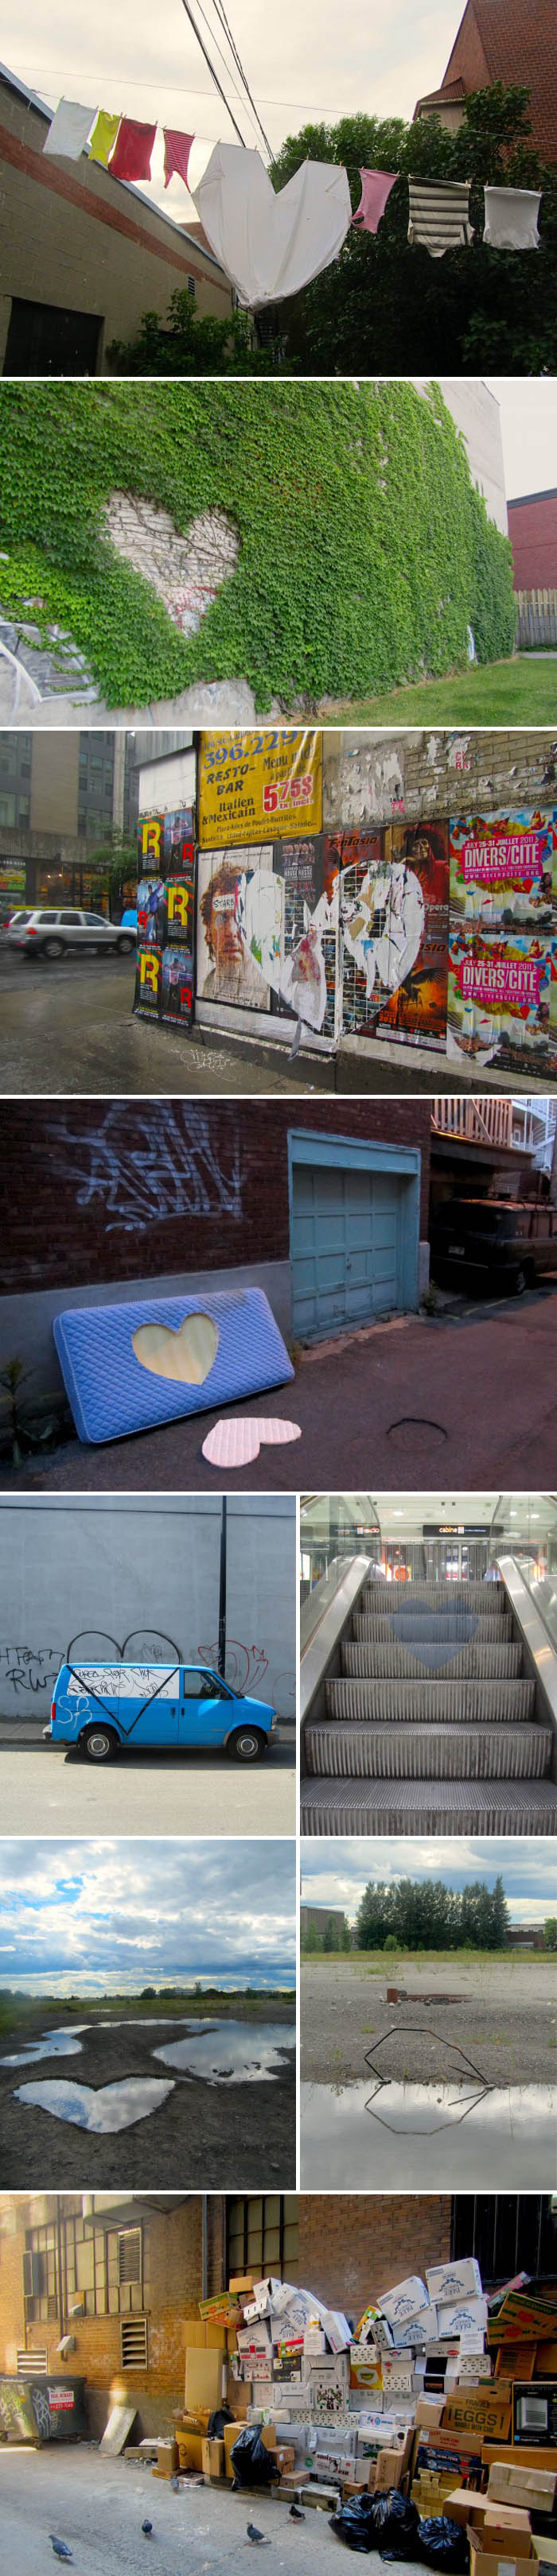 Street art, hearts, dead hearts, valentine's day, graffiti, photography, Roadsworth, Montreal